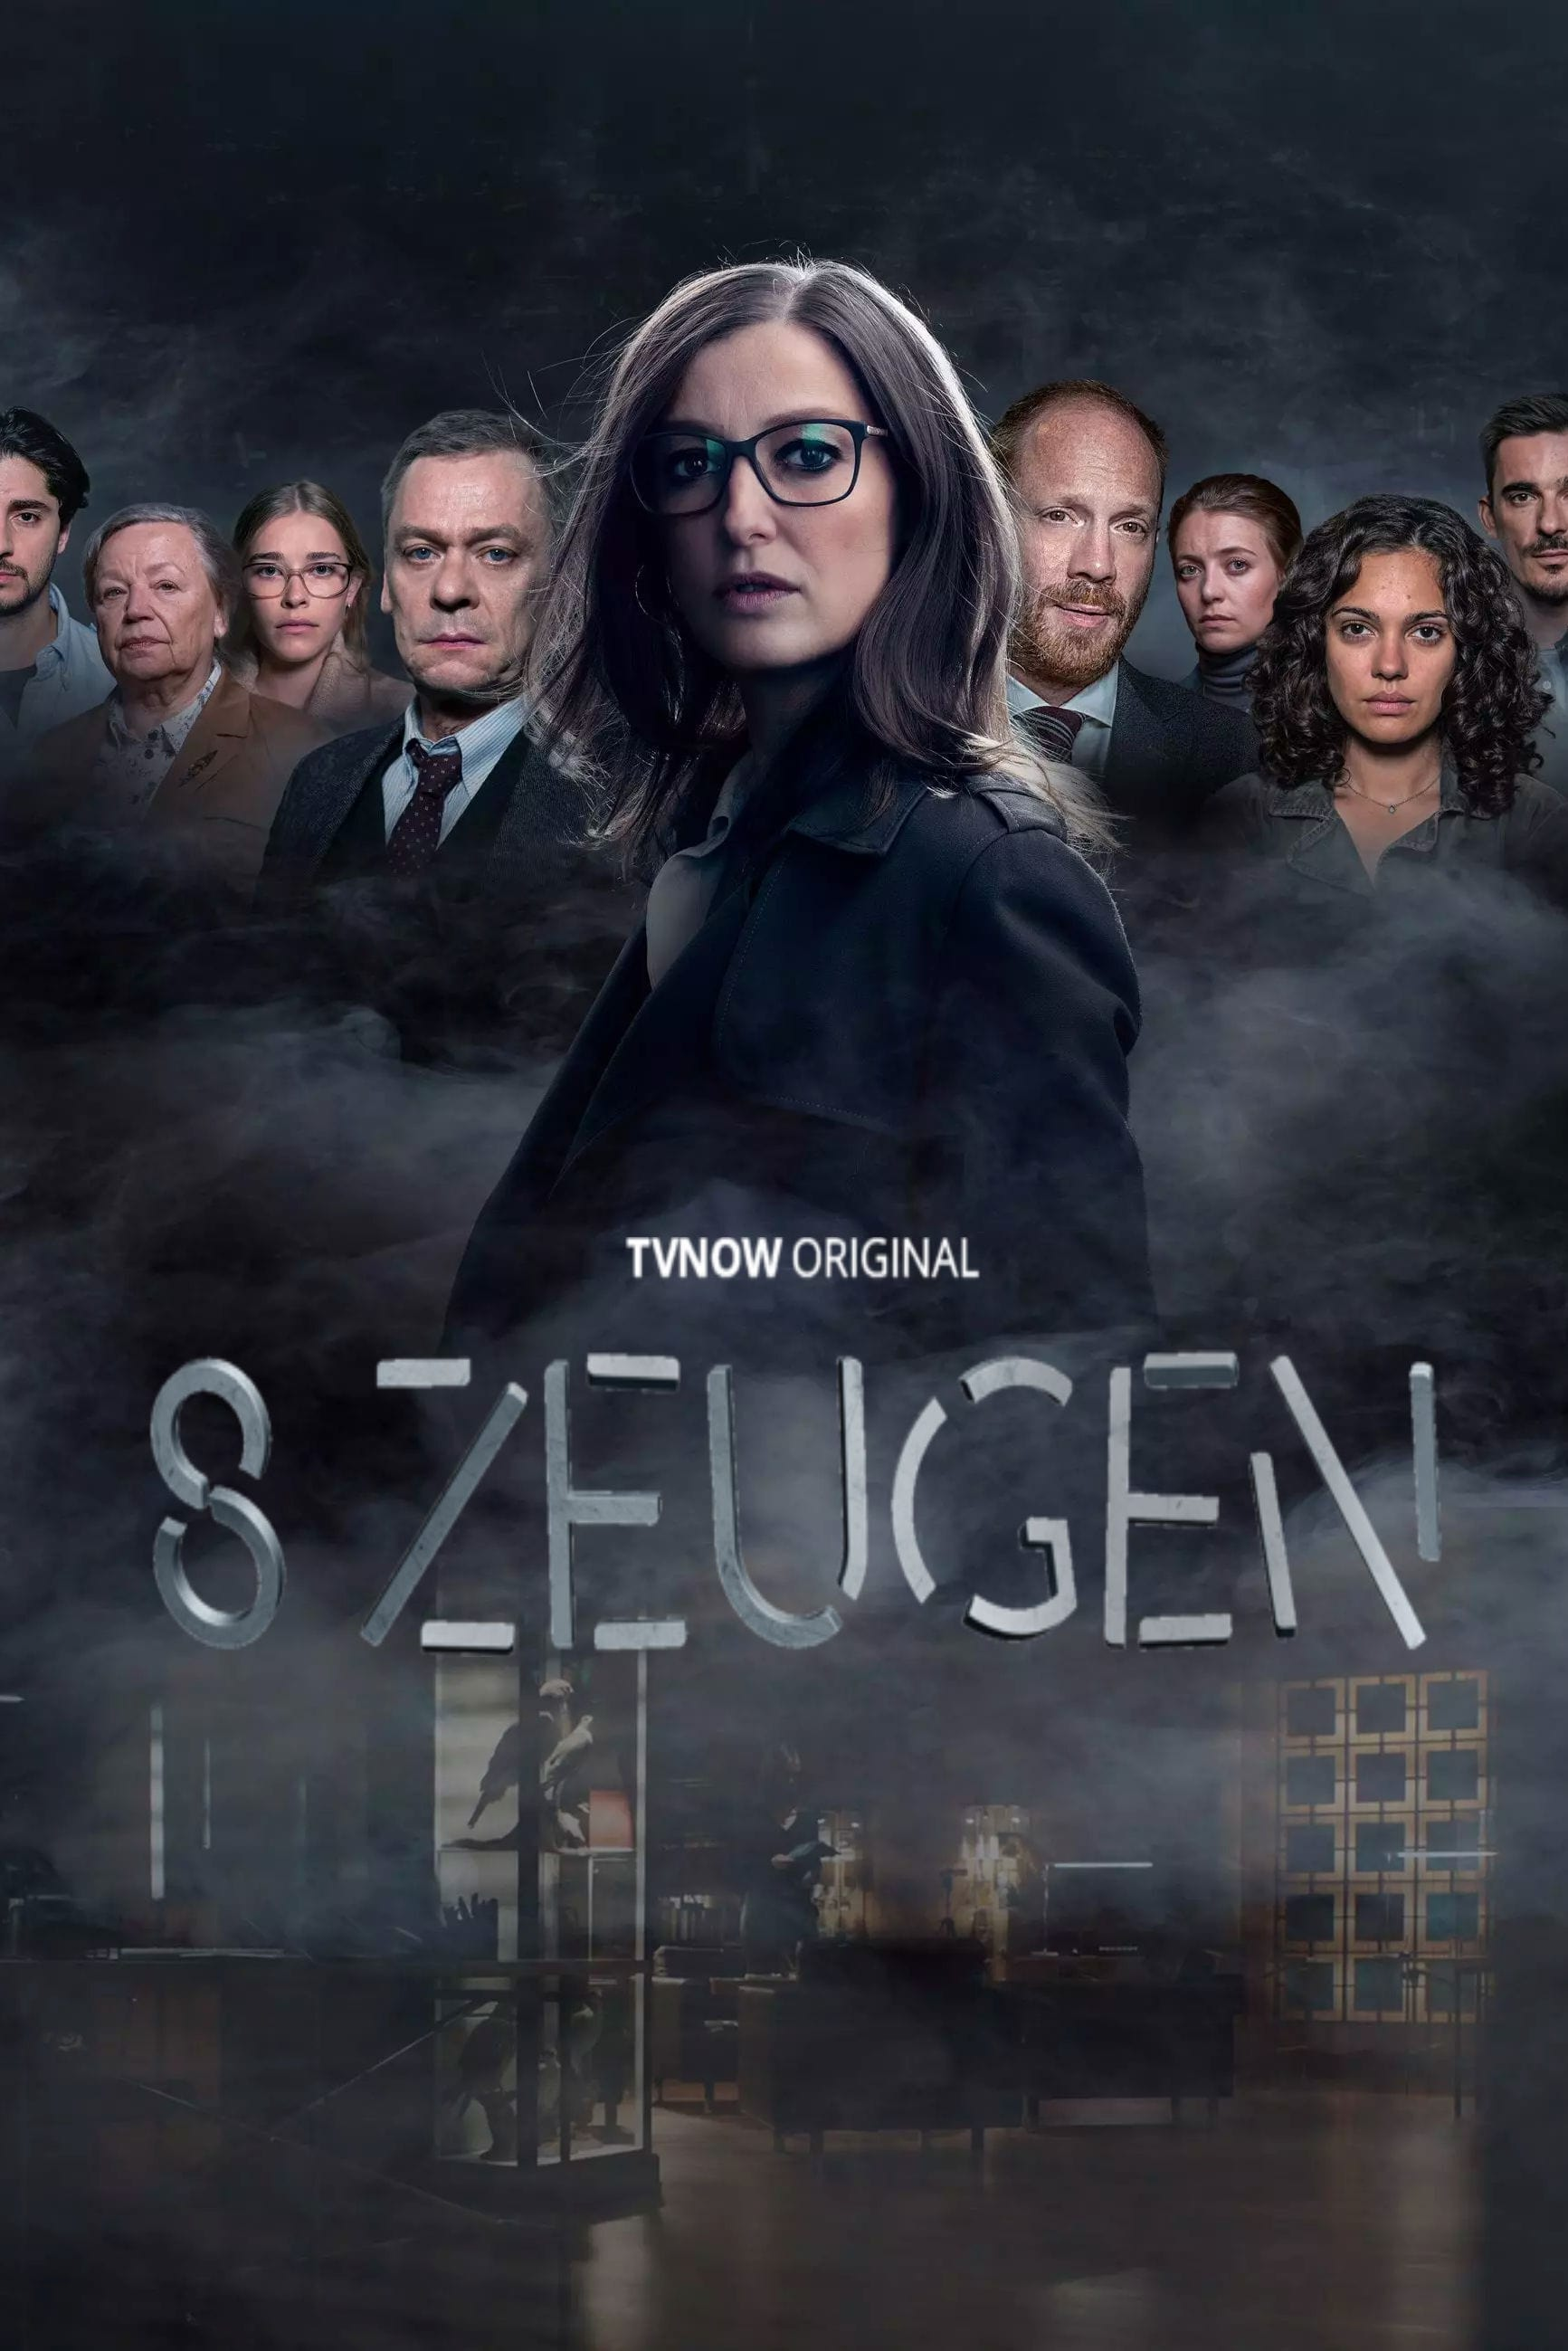 8 Zeugen TV Shows About Psycho